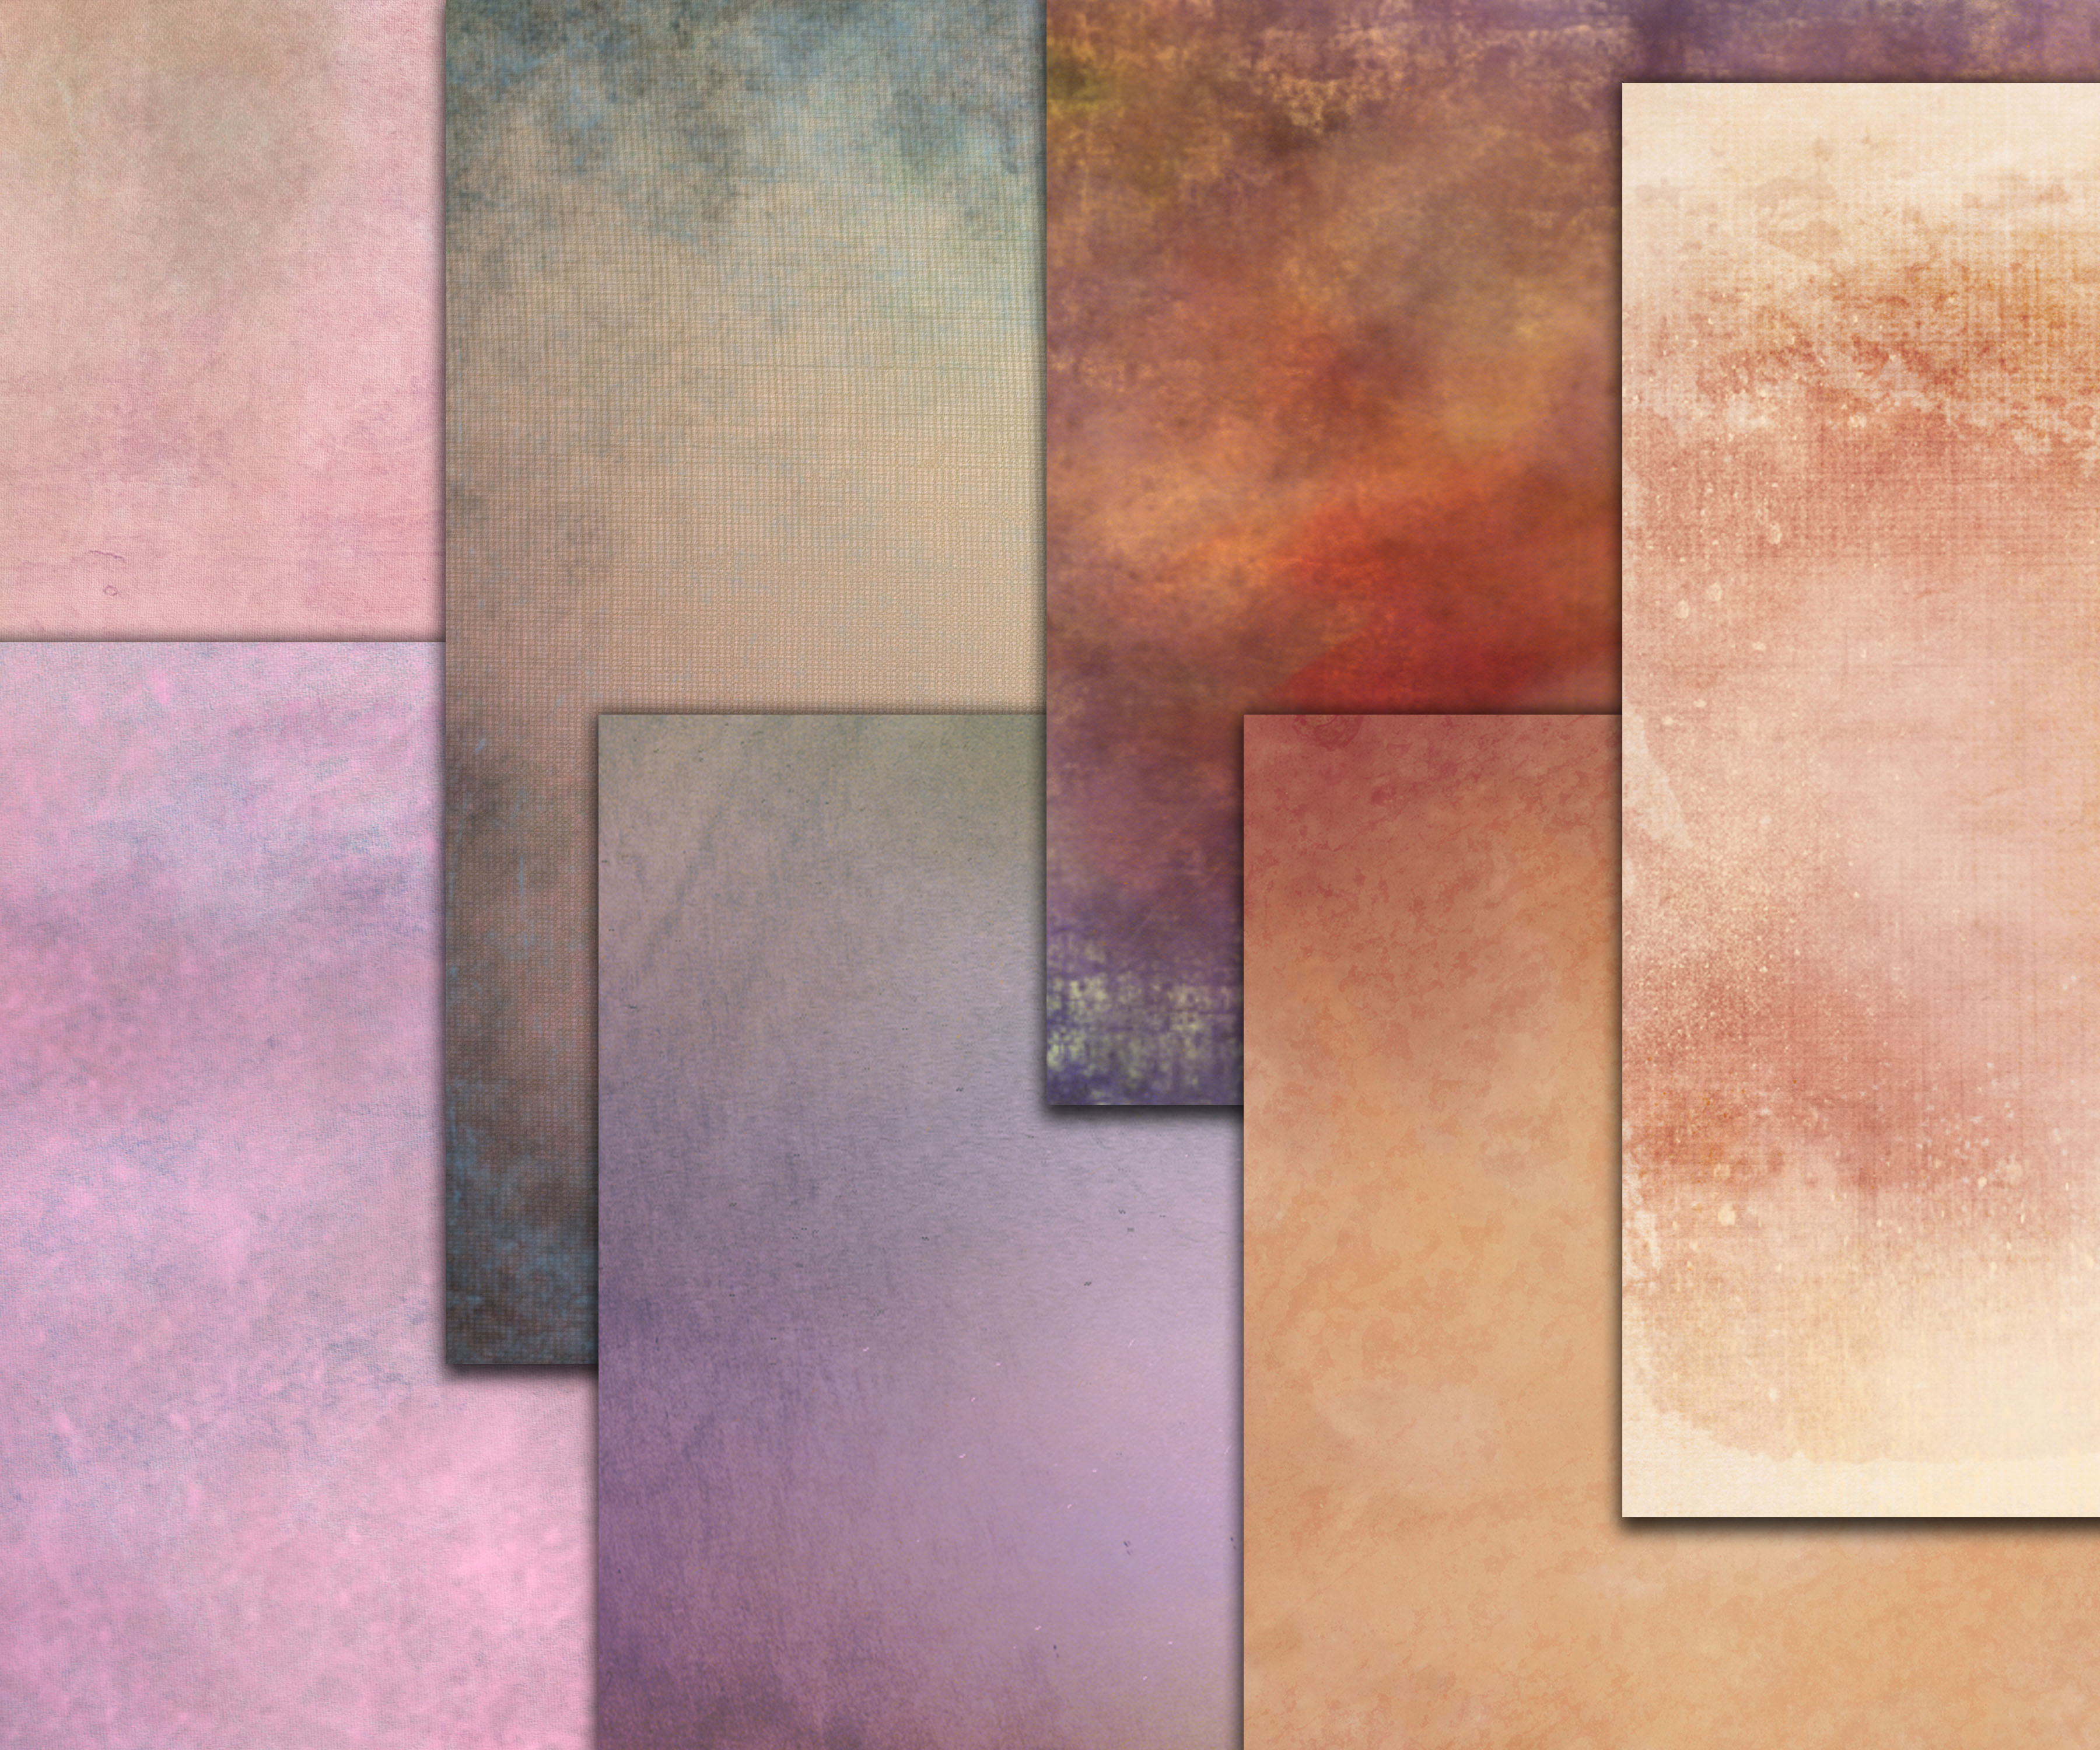 Grunge texture Paper example image 2